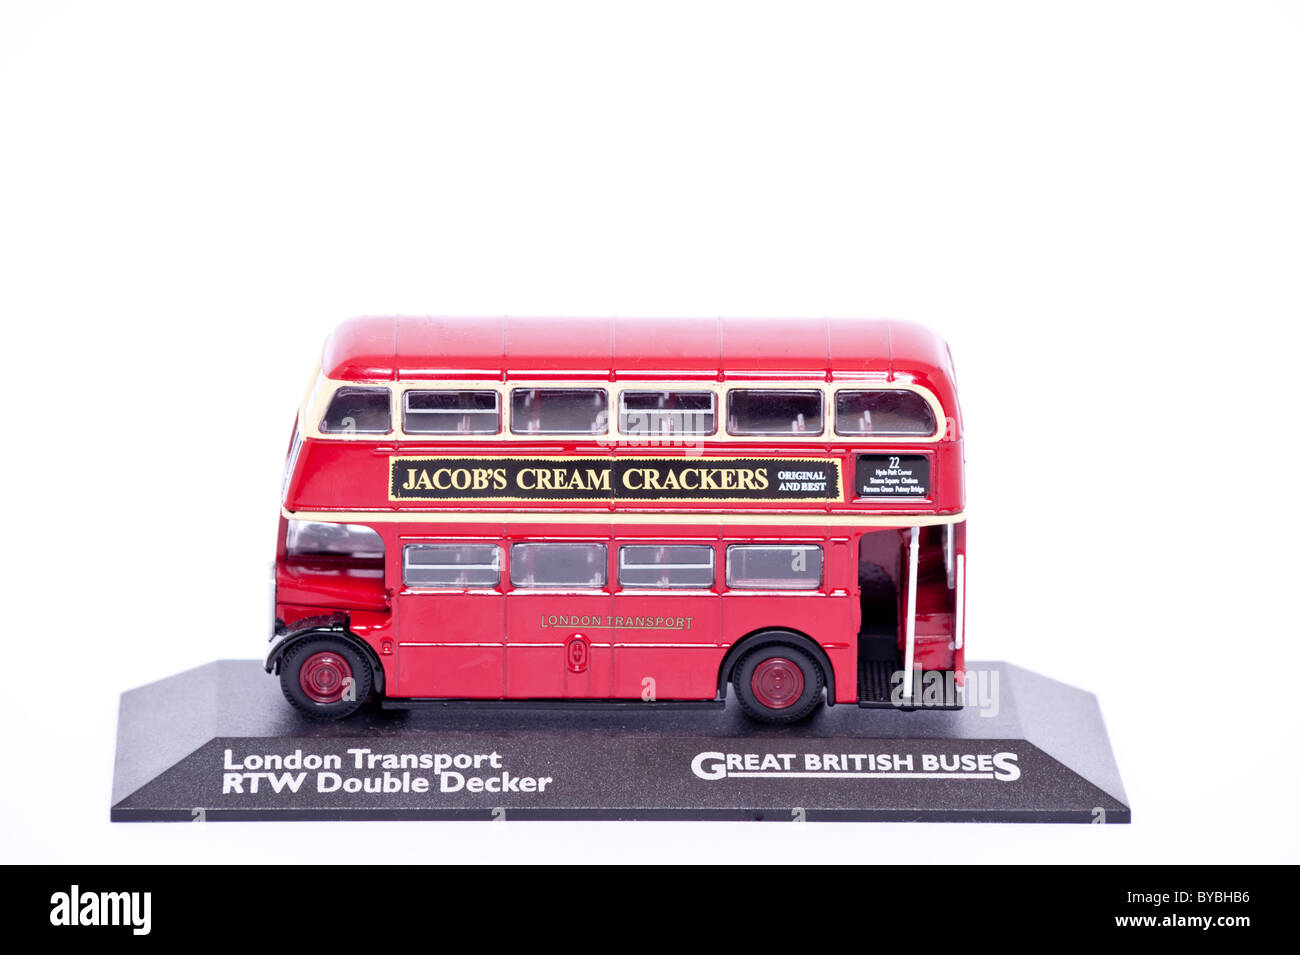 A toy model double decker bus on a white background - Stock Image